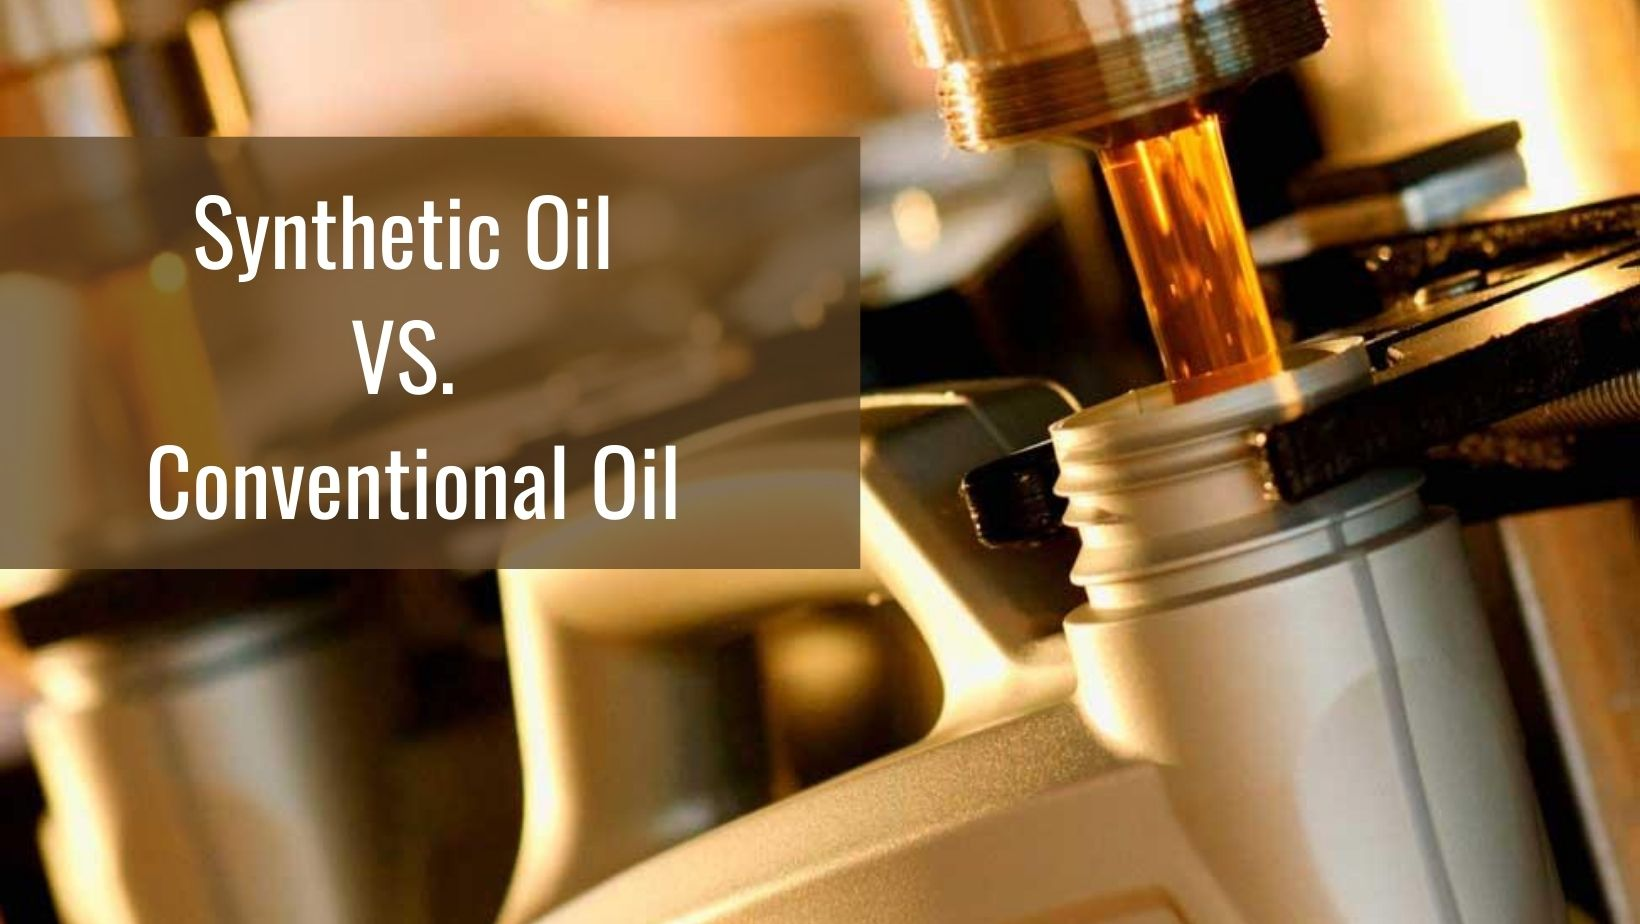 Synthetic Oil VS. Conventional Oil